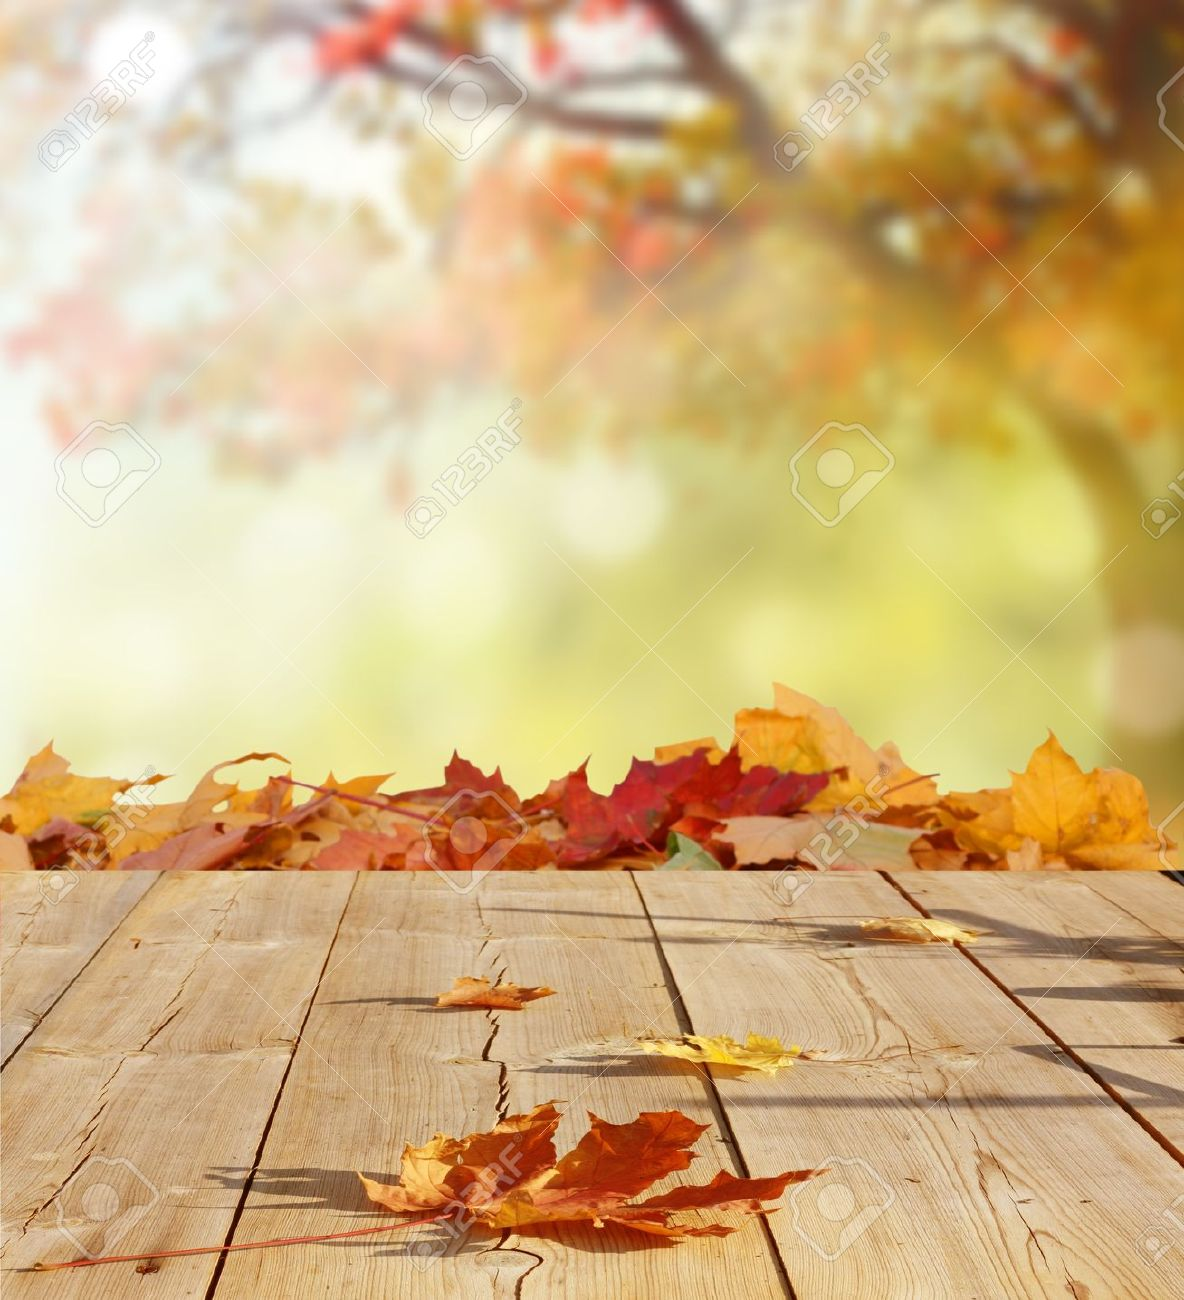 autumn background stock photo picture and royalty free image image